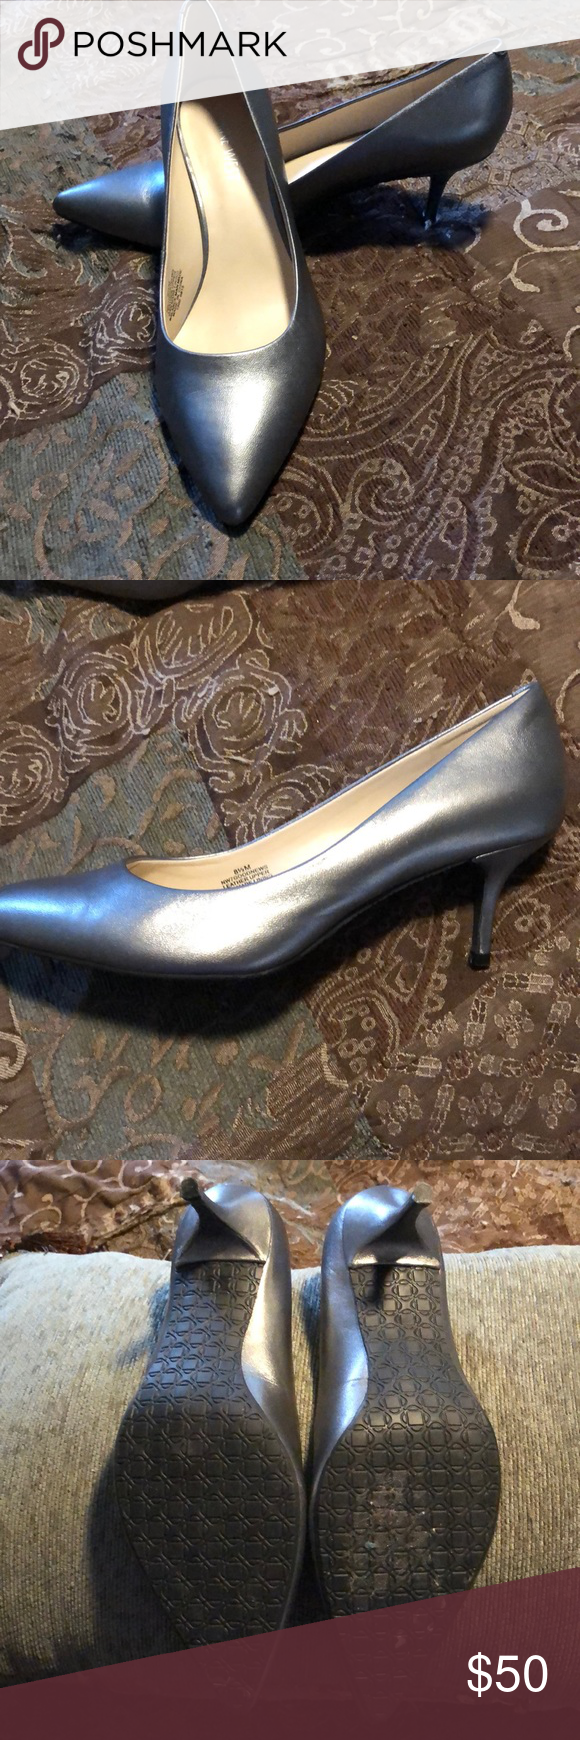 Nine West Silver Kitten Heel Pumps Kitten Heel Pumps Silver Kitten Heels Kitten Heels